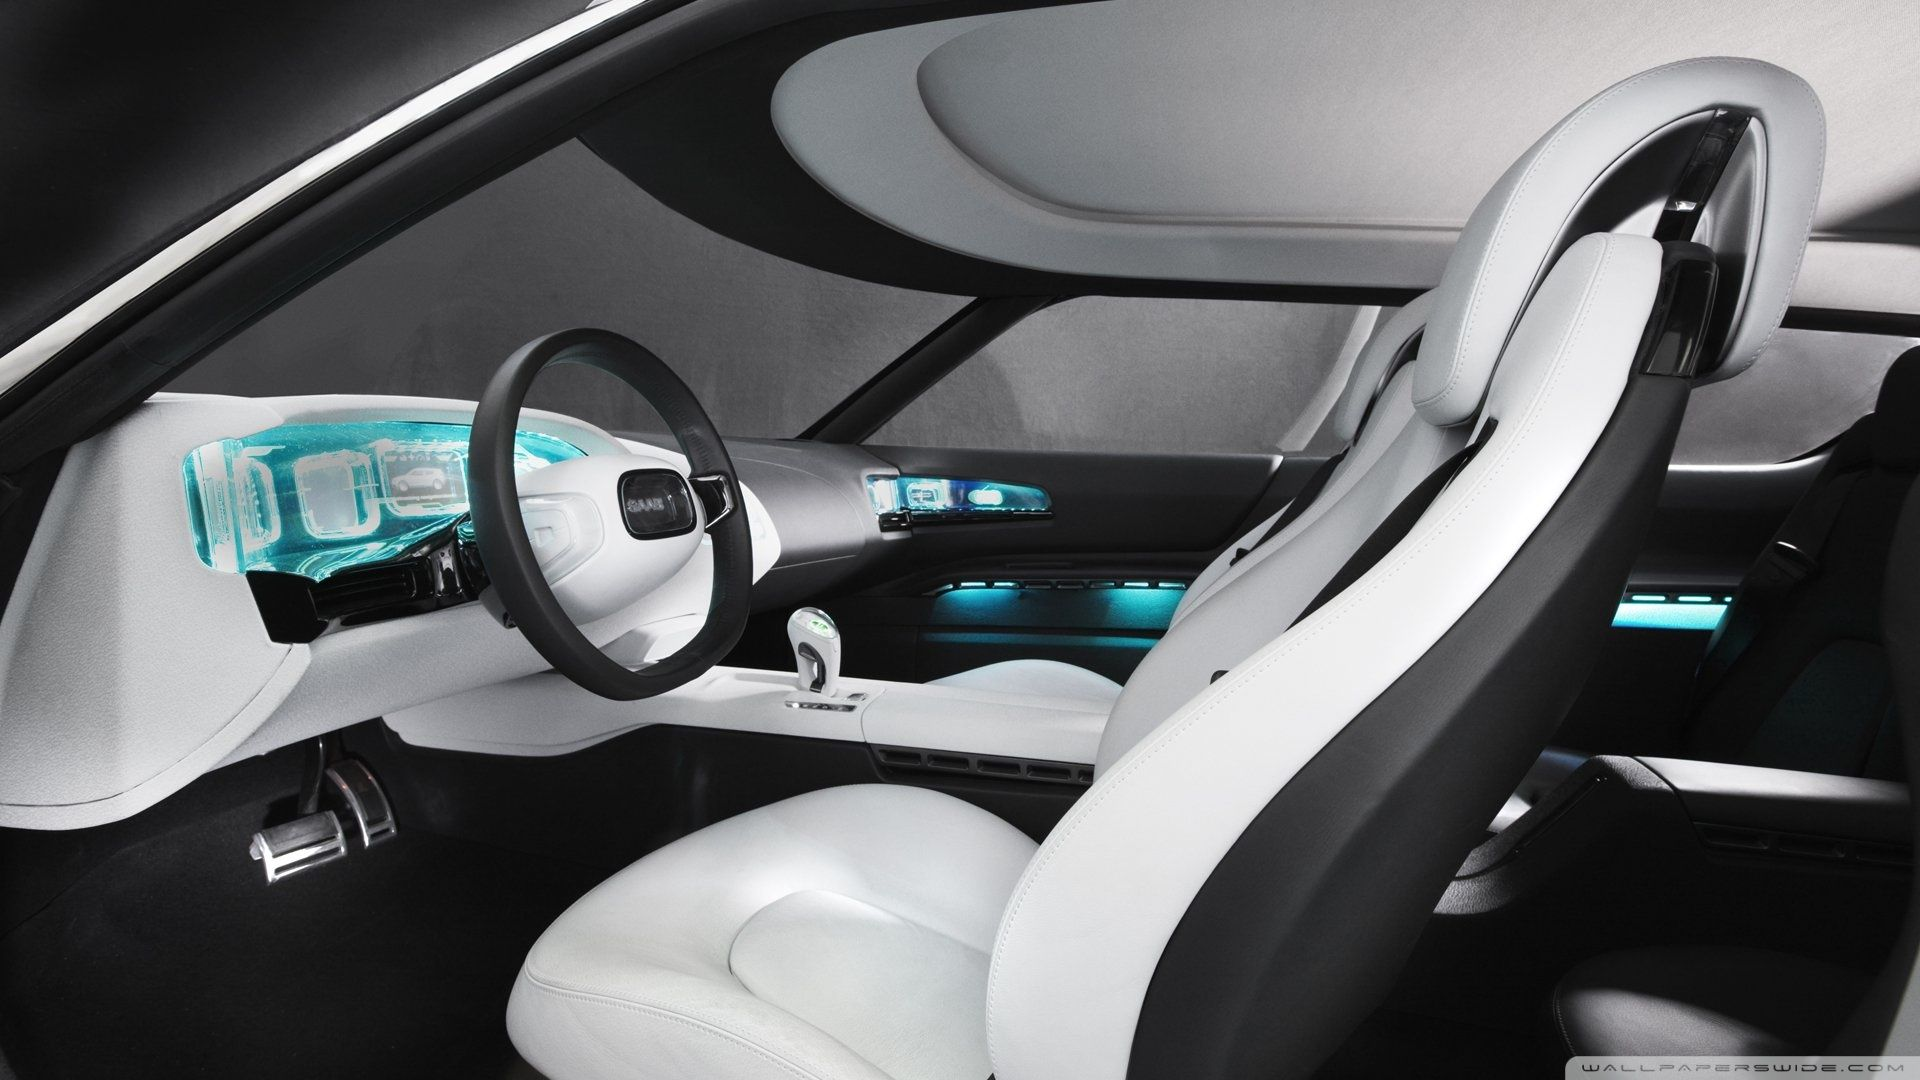 Car Interior 53 HD desktop wallpaper : Widescreen : High ...